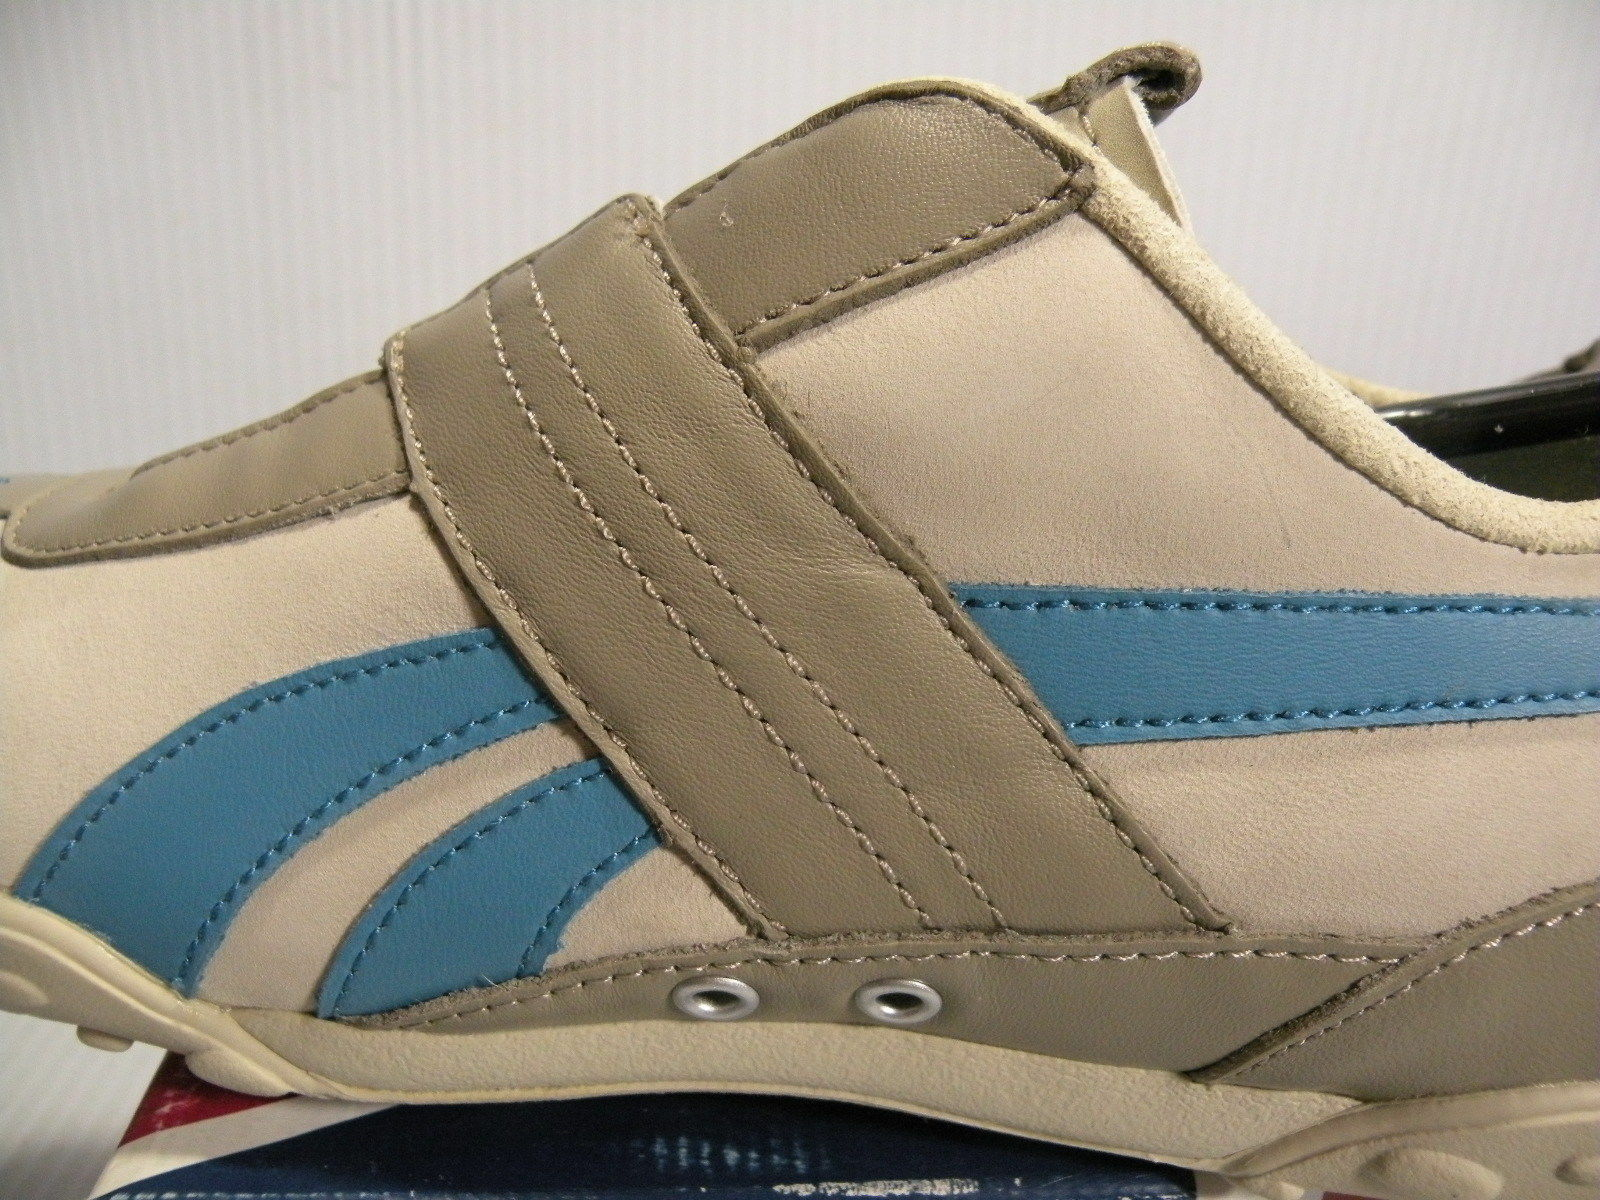 REEBOK CLASSIC MOTORING CLOSURE LO LO LO WOMEN SHOES KHAKI blueE 2-151174 SIZE 8.5 NEW 47c3cf